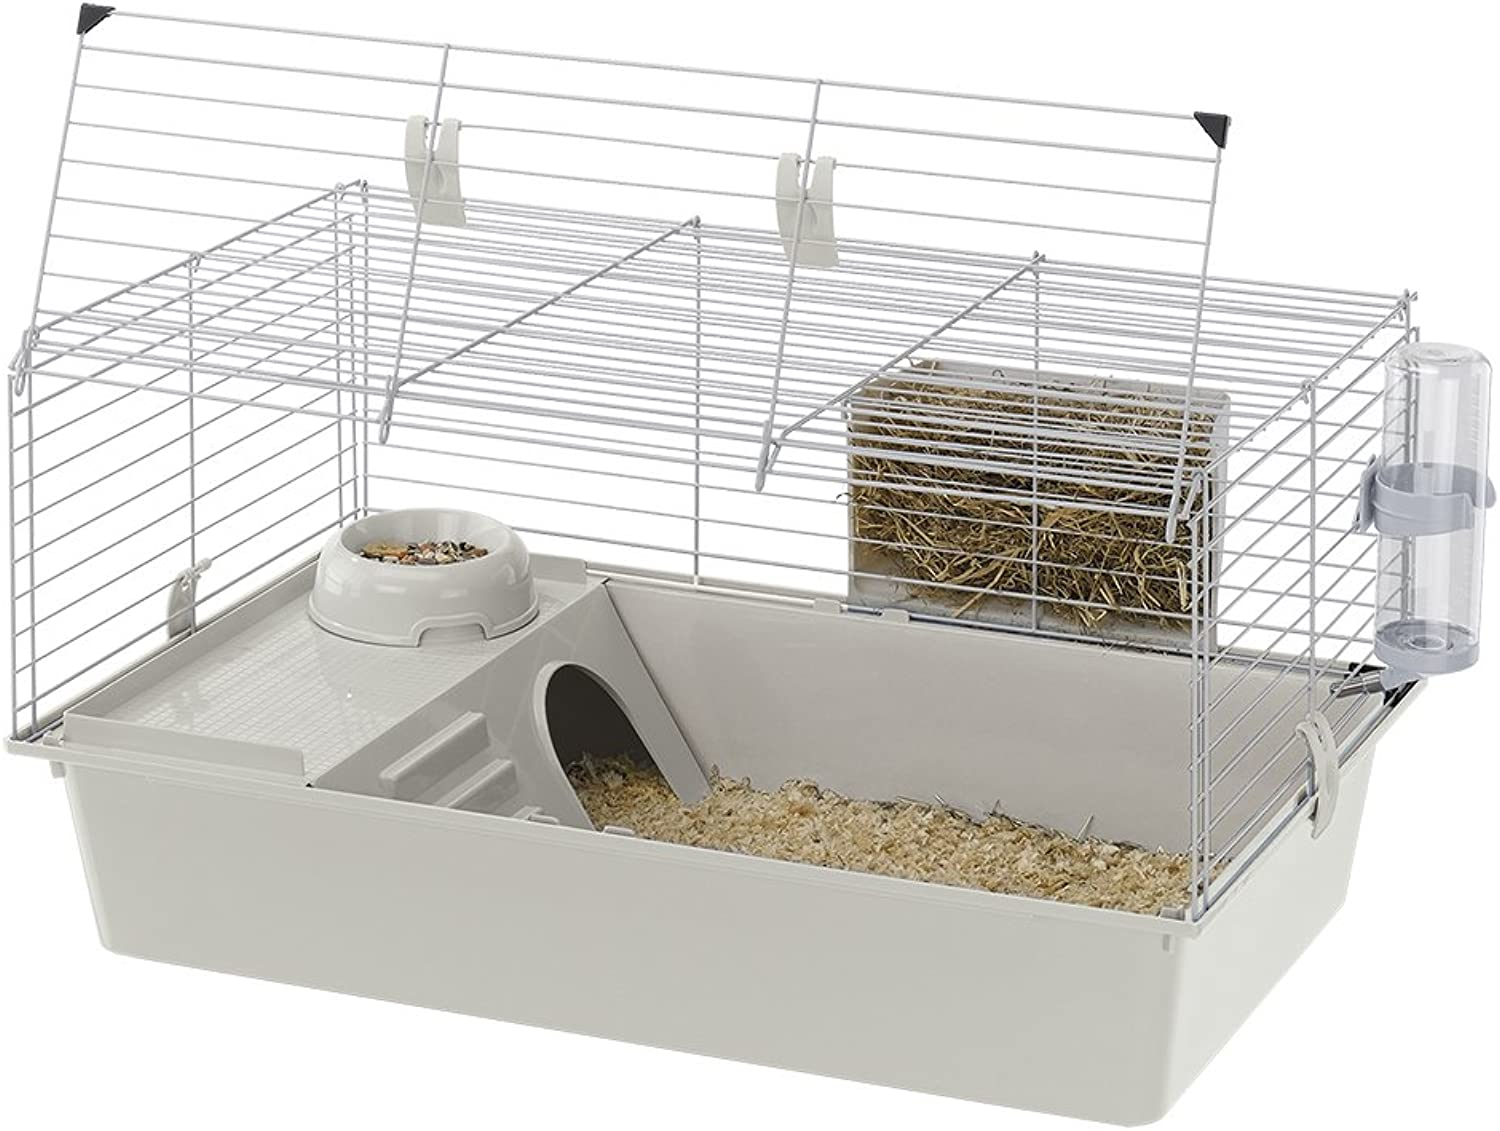 Ferplast CAGE CAVIE 80 Guinea Pig Cage, Safety Closing System, 30, 31x18, 9xH 16, 54Inch Grey